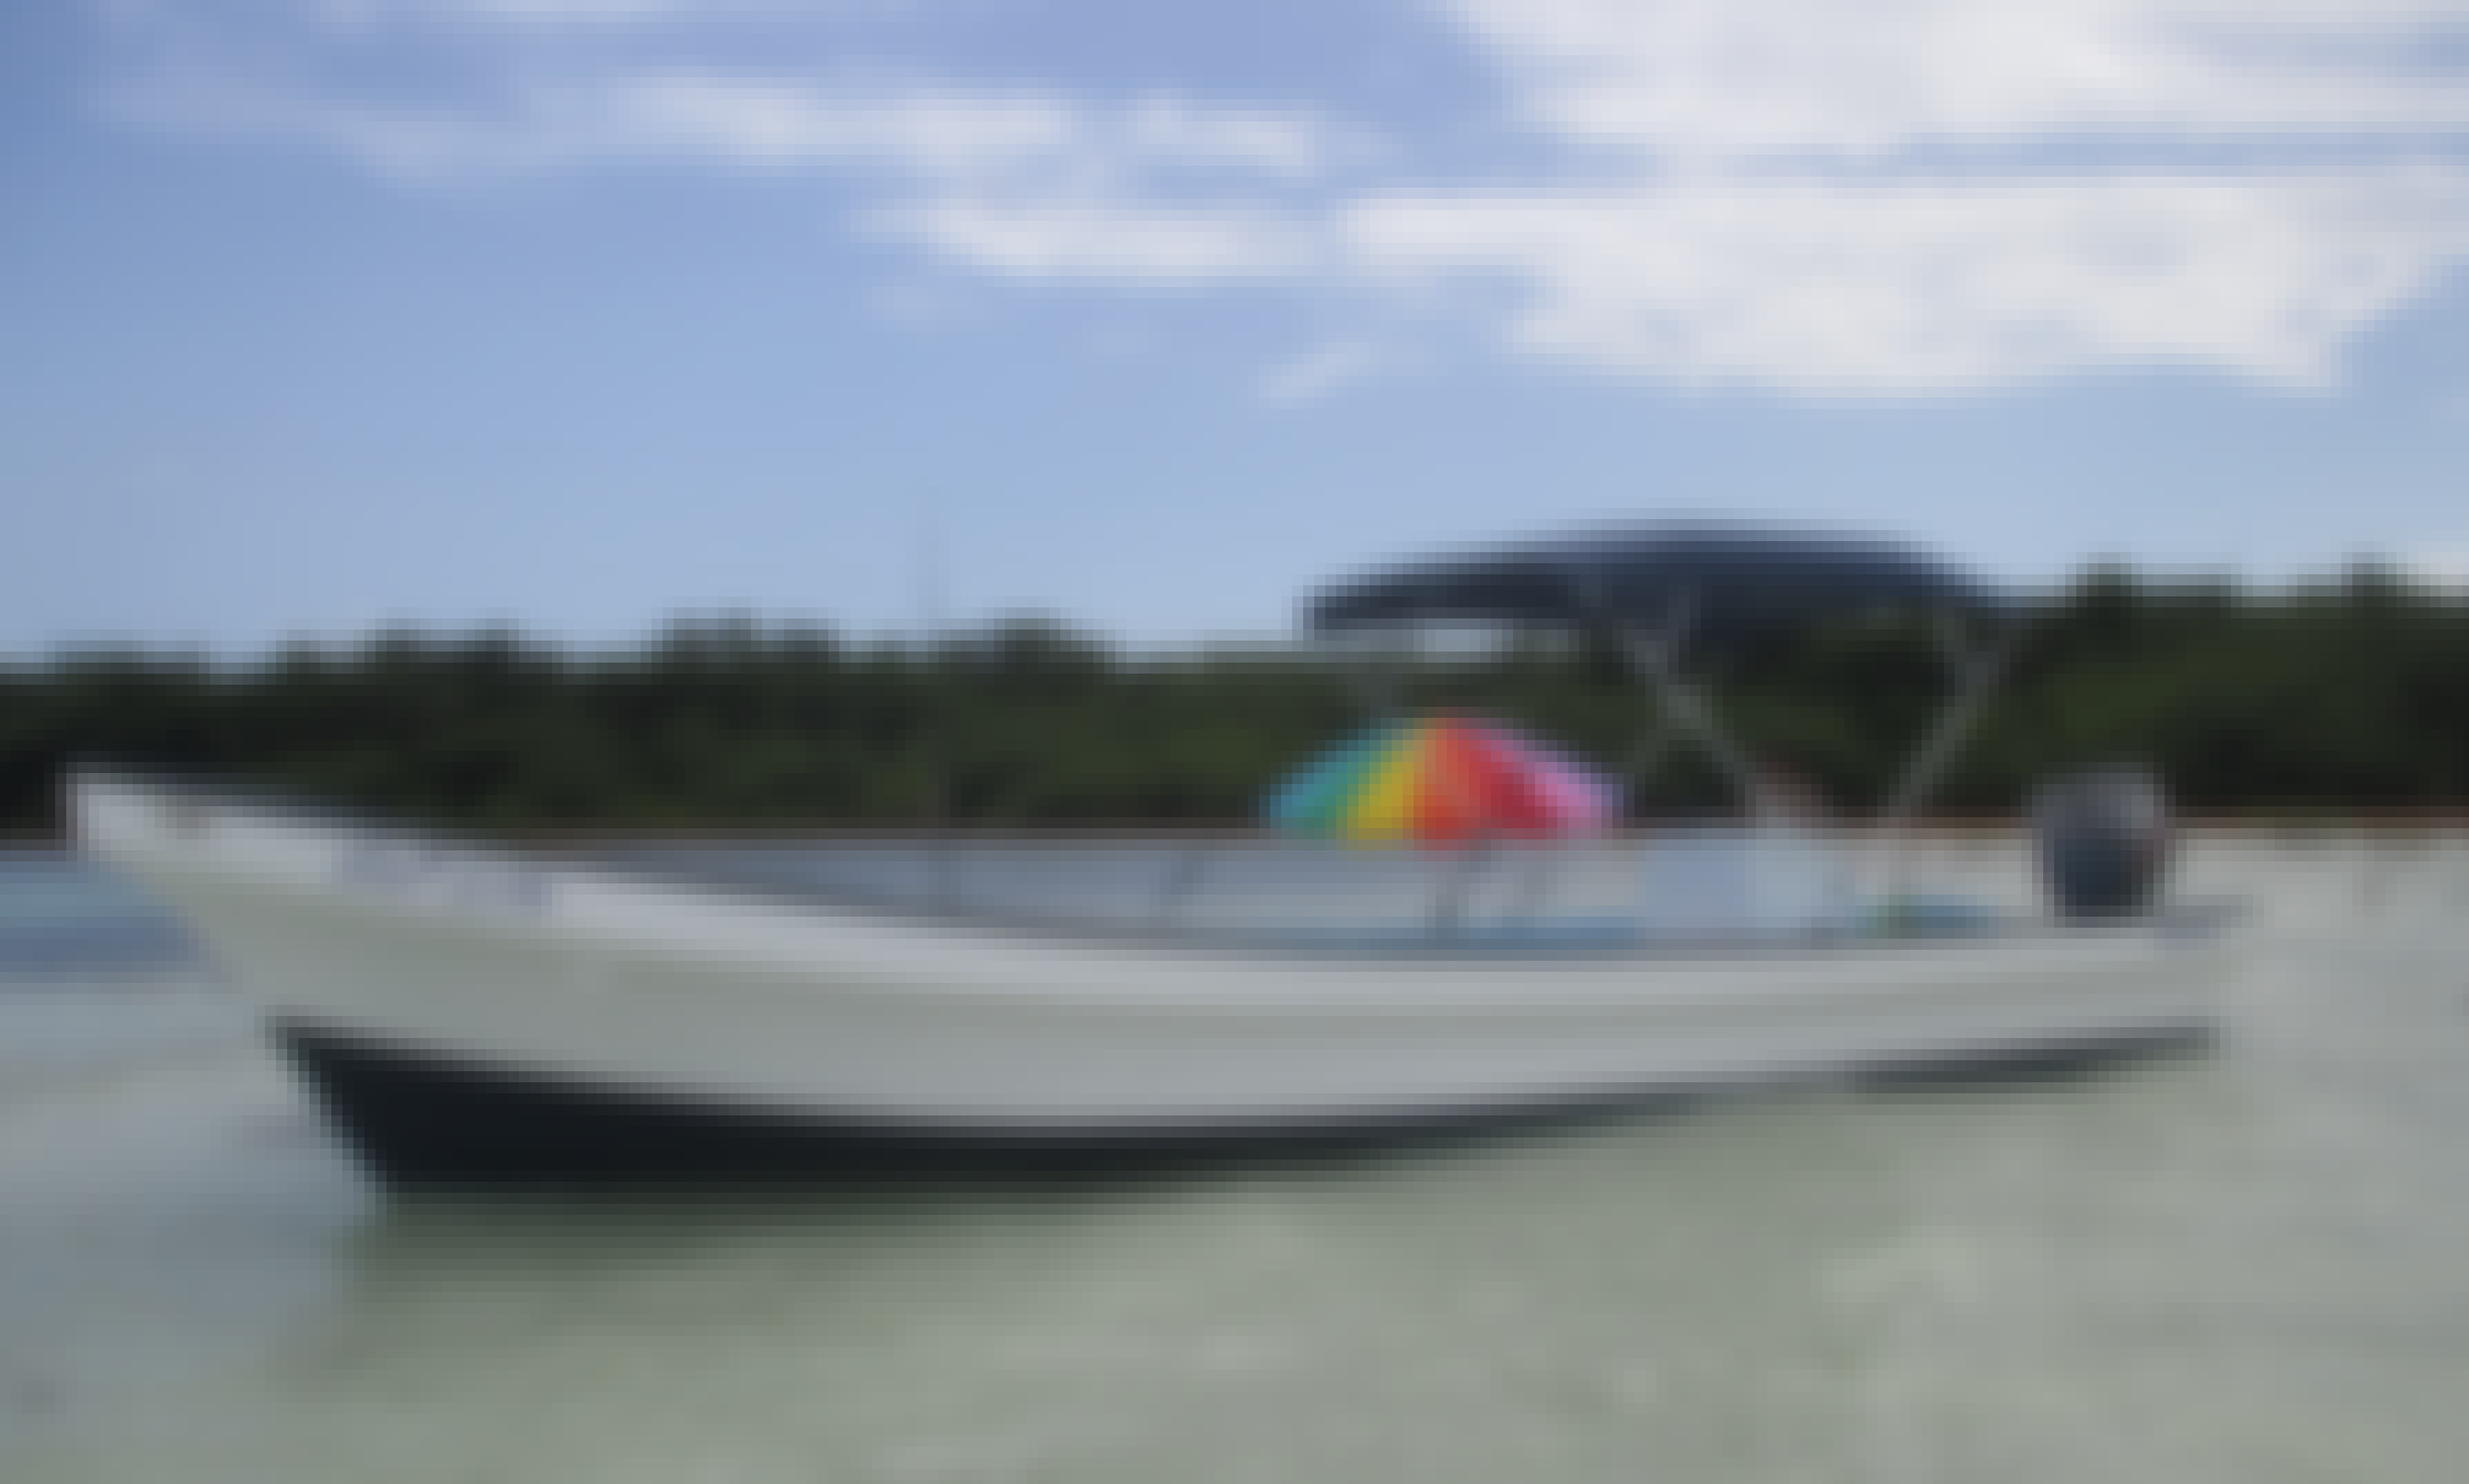 Boat Rental, Island Excursions, Sand Bar Trips, Snorkeling